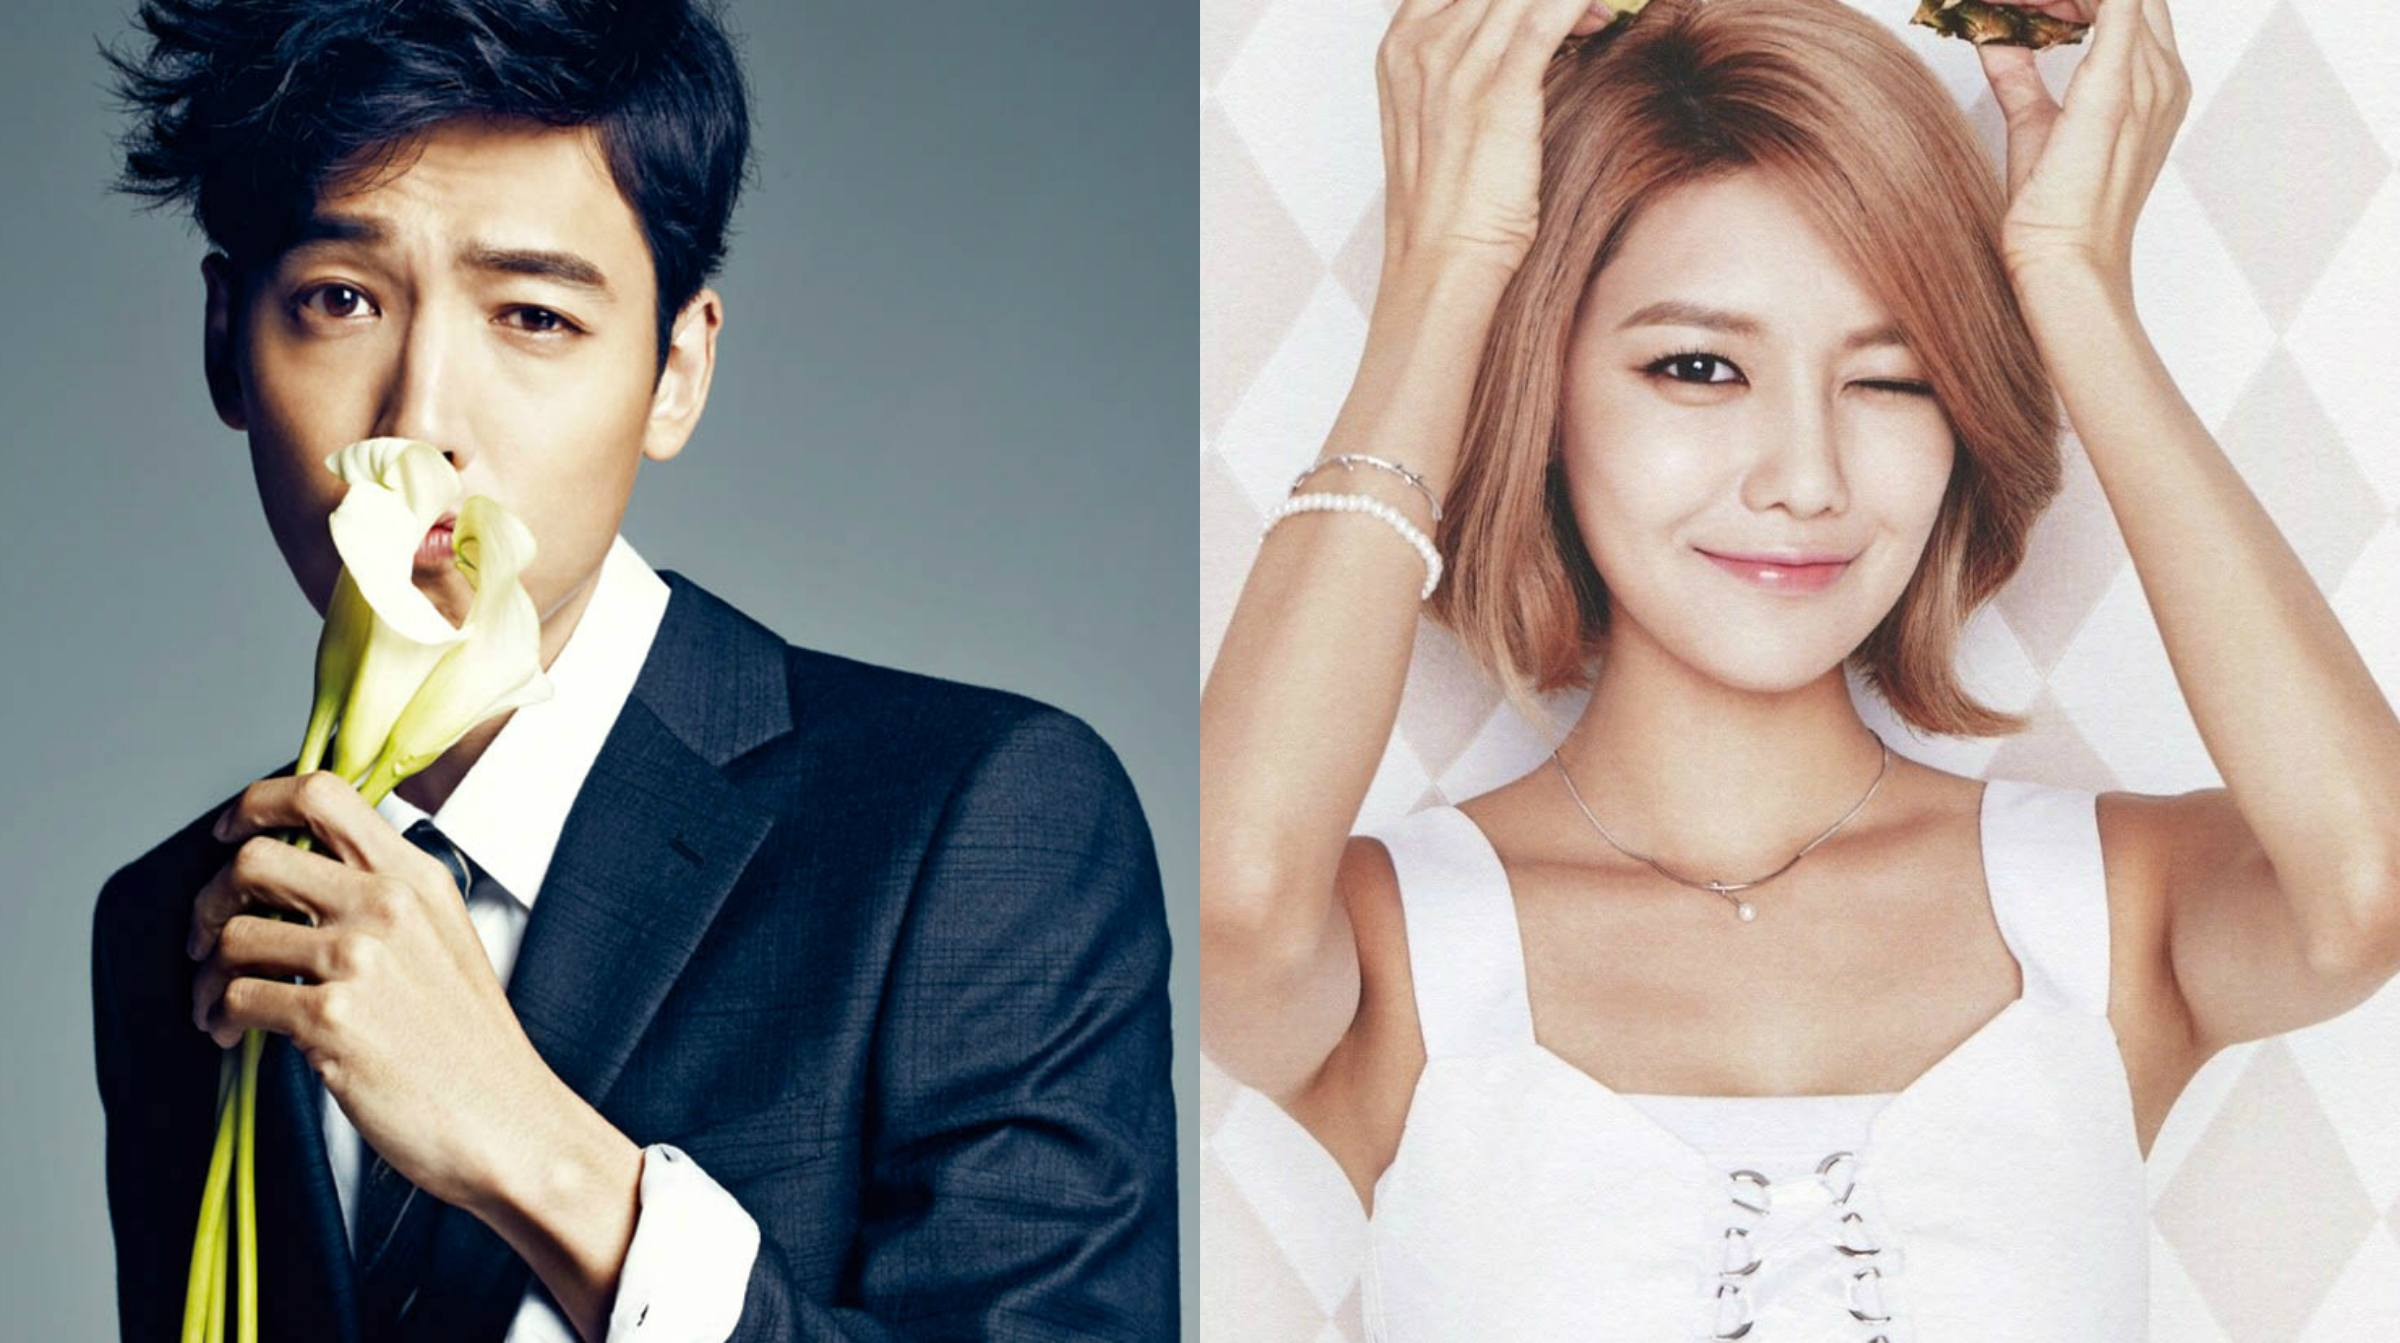 Sooyoung reveals her ideal man is not Jung Kyung Ho